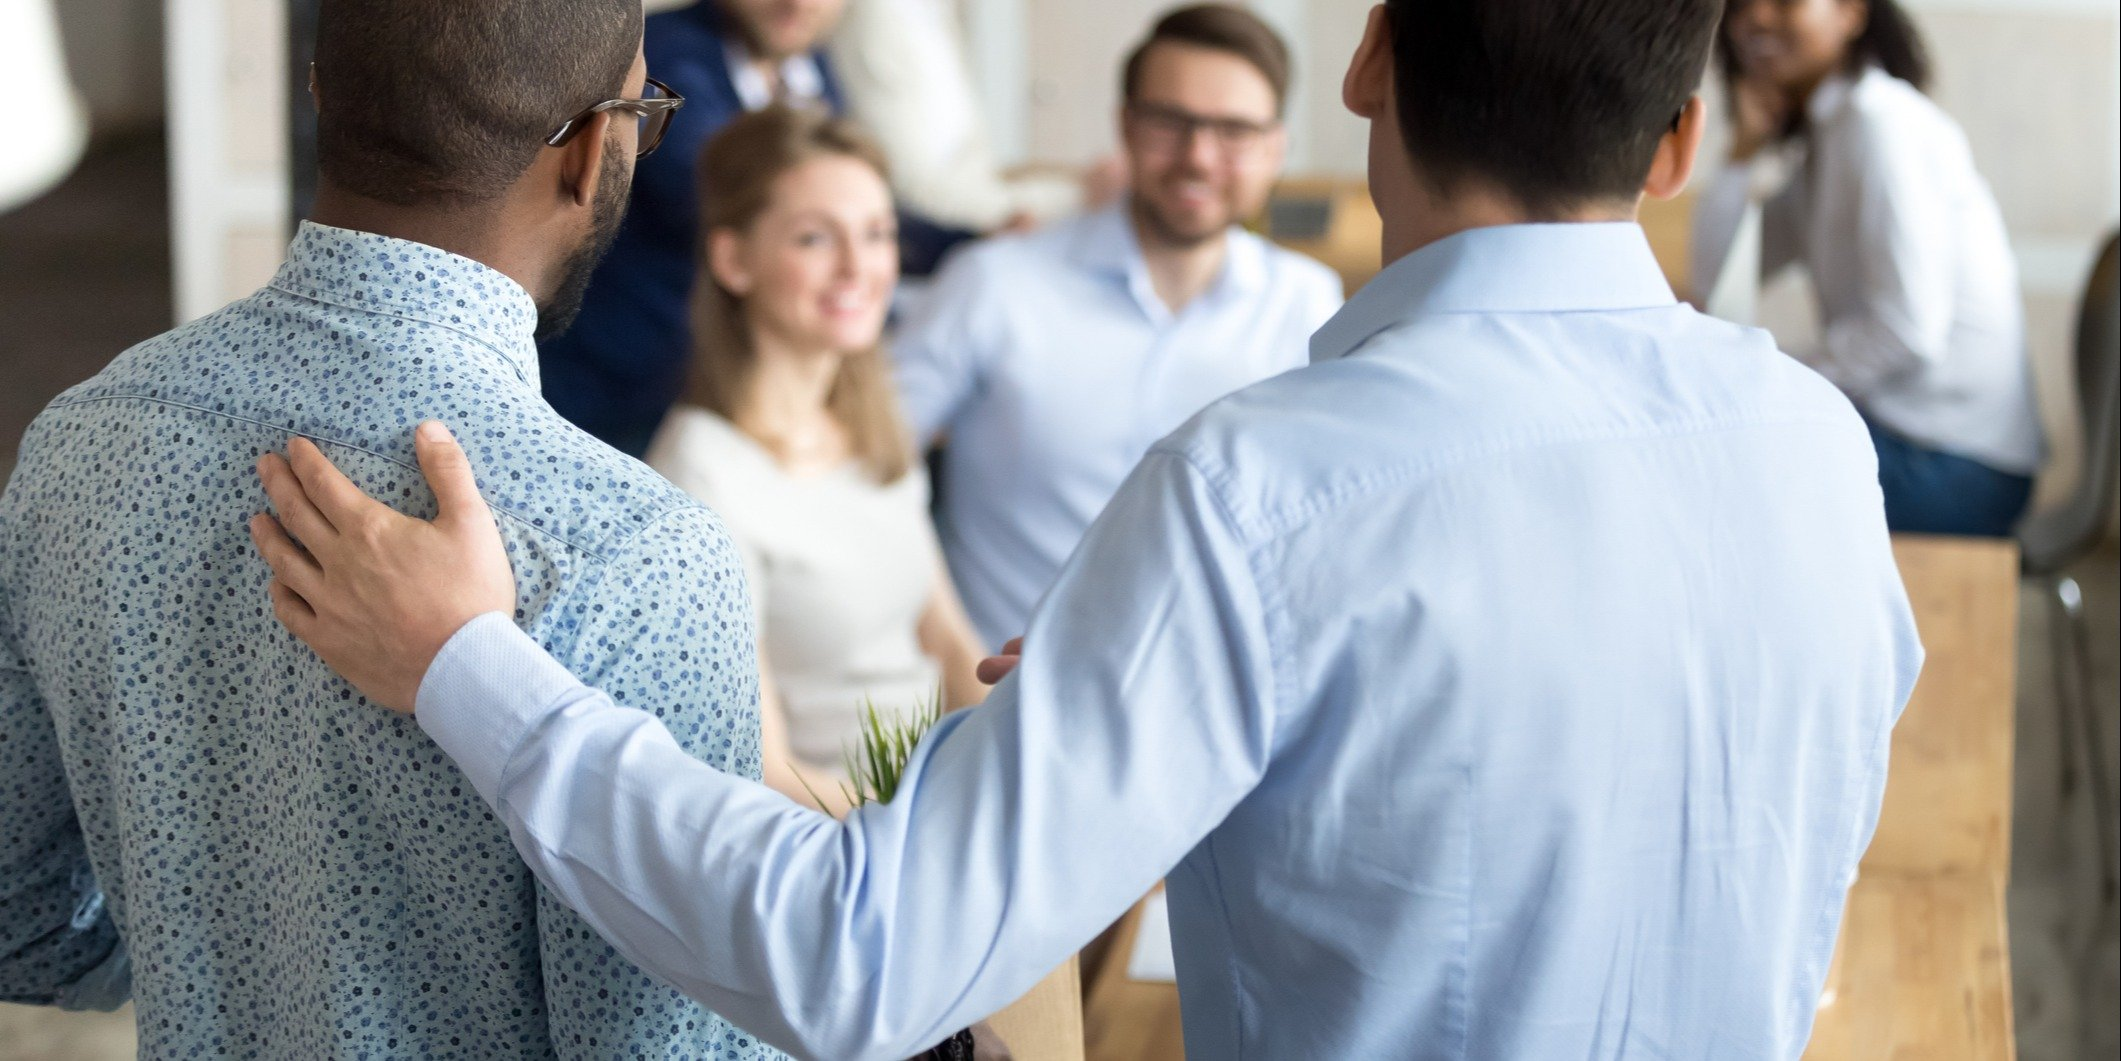 An Easy, Low-Cost Way to Increase Employee Engagement